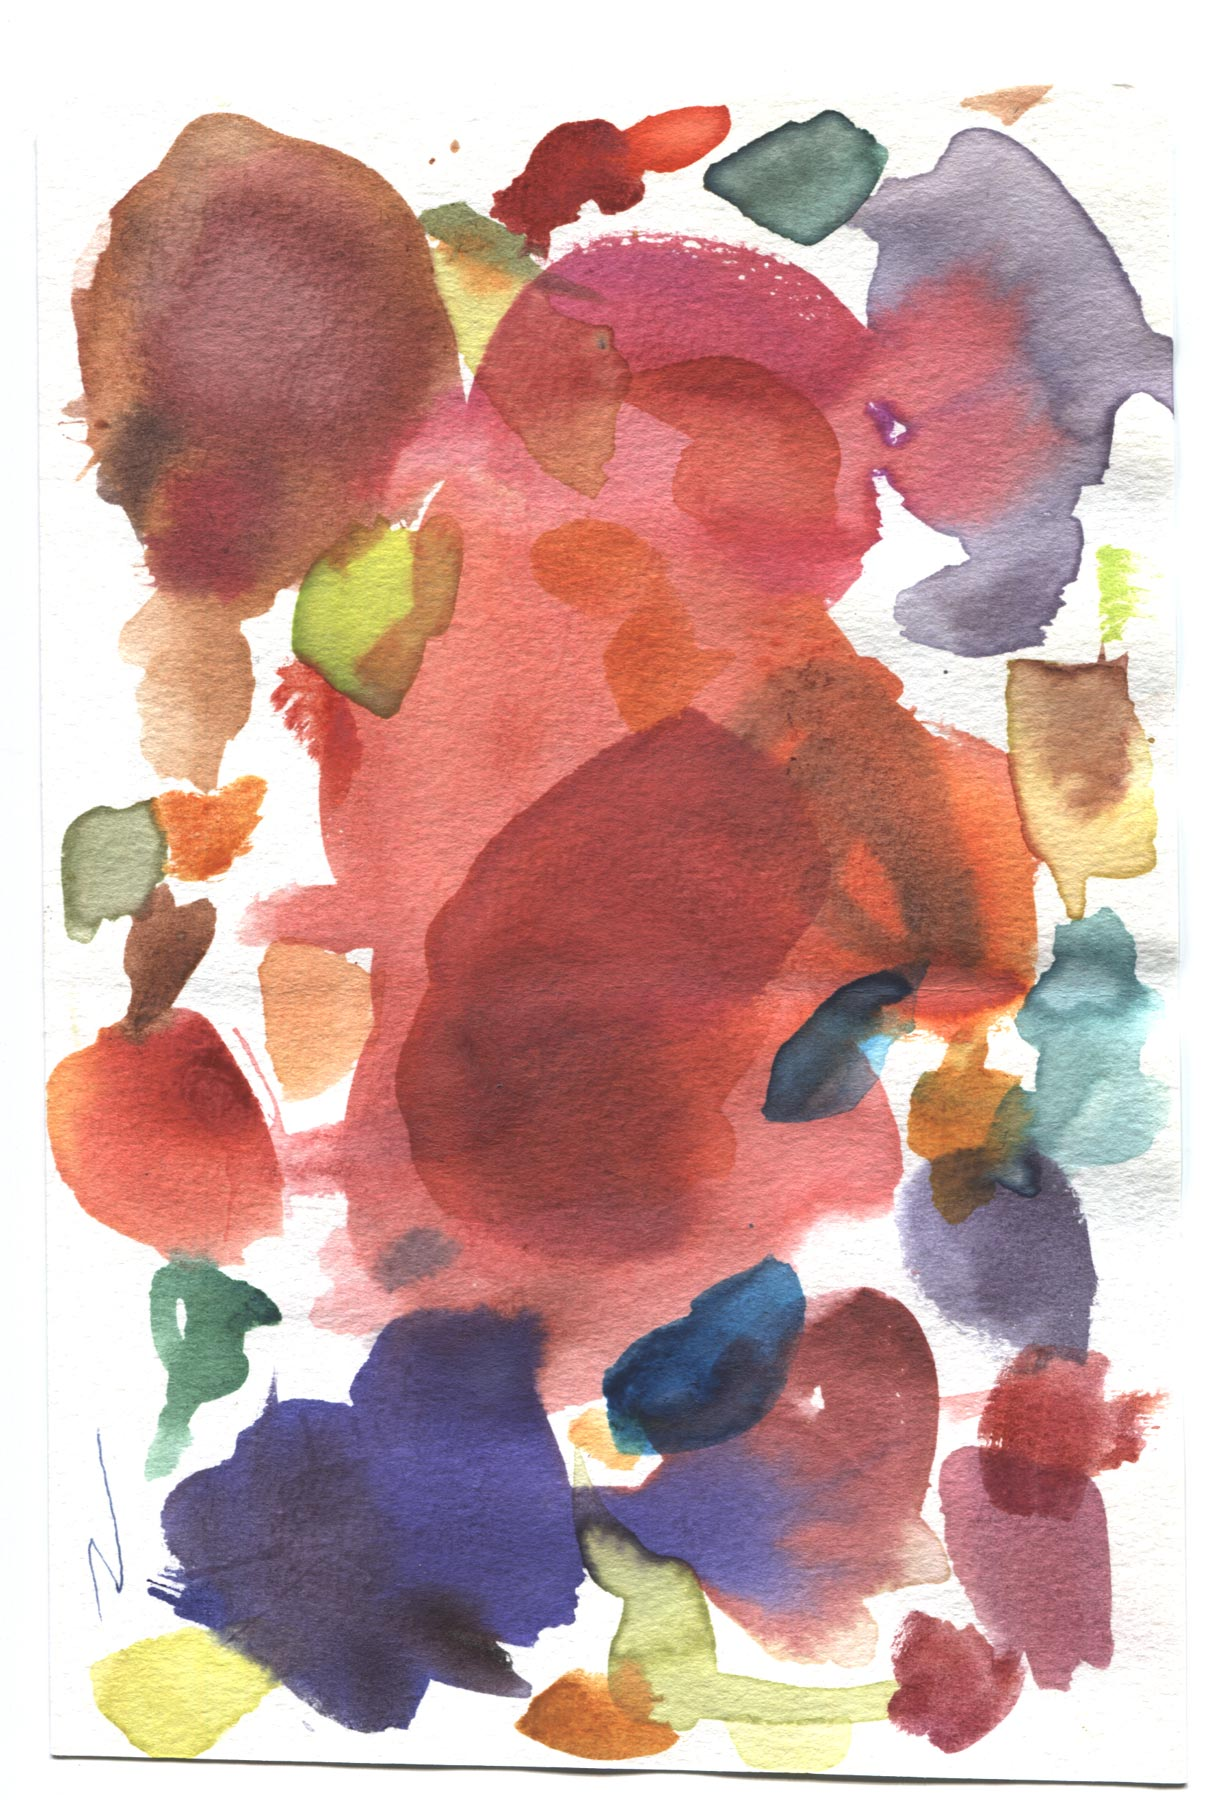 Seven Watercolor Paper Textures